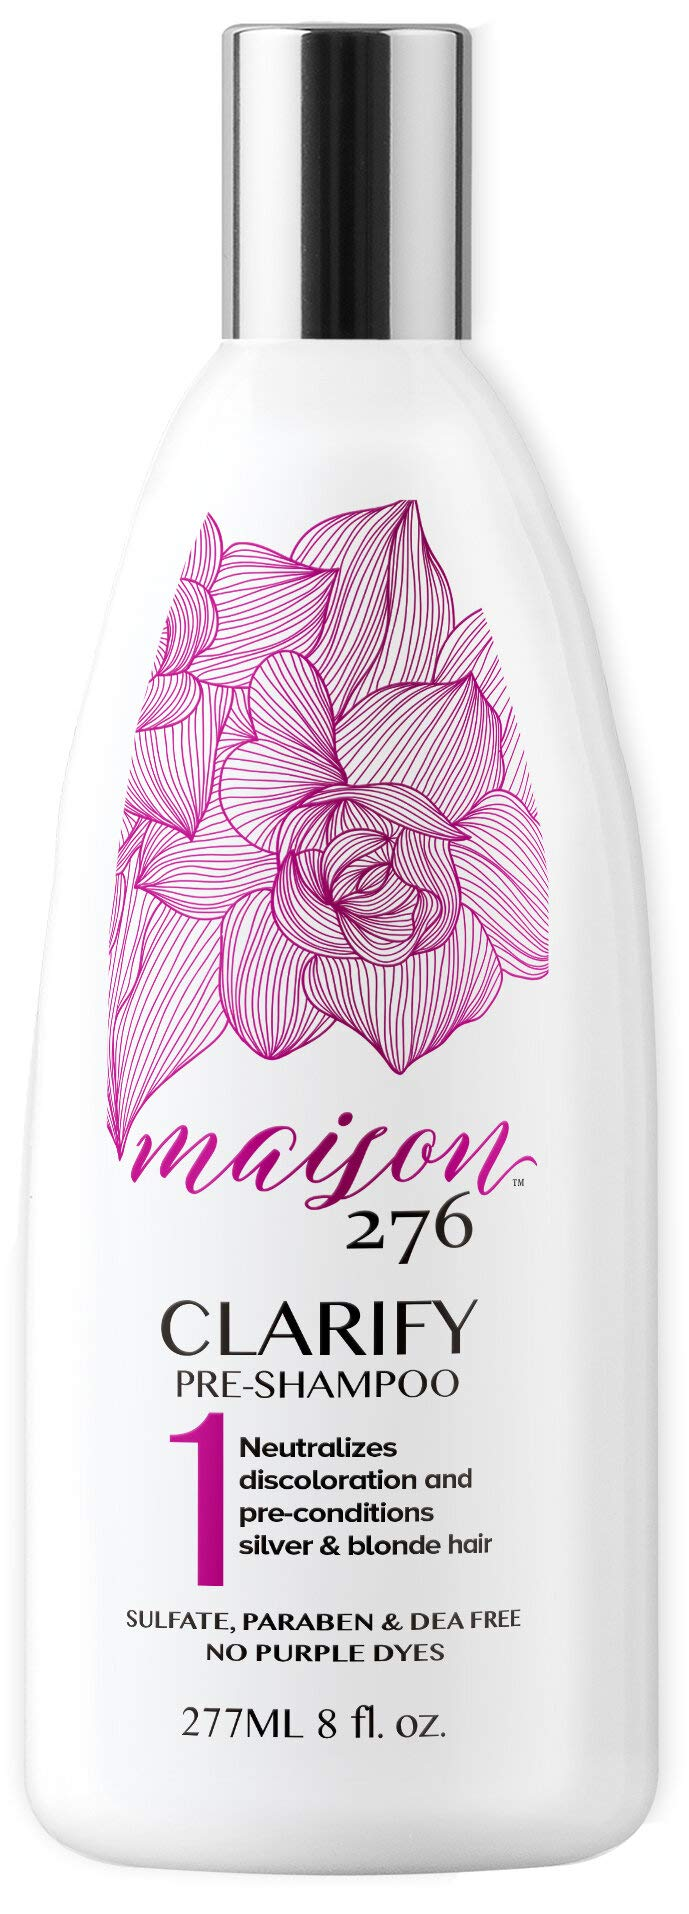 Maison 276 CLARIFY Pre-Shampoo Treatment for Silver, Gray, and Blonde Hair. Paraben, Sulfate, and DEA free. No Purple Dye. 8 oz.